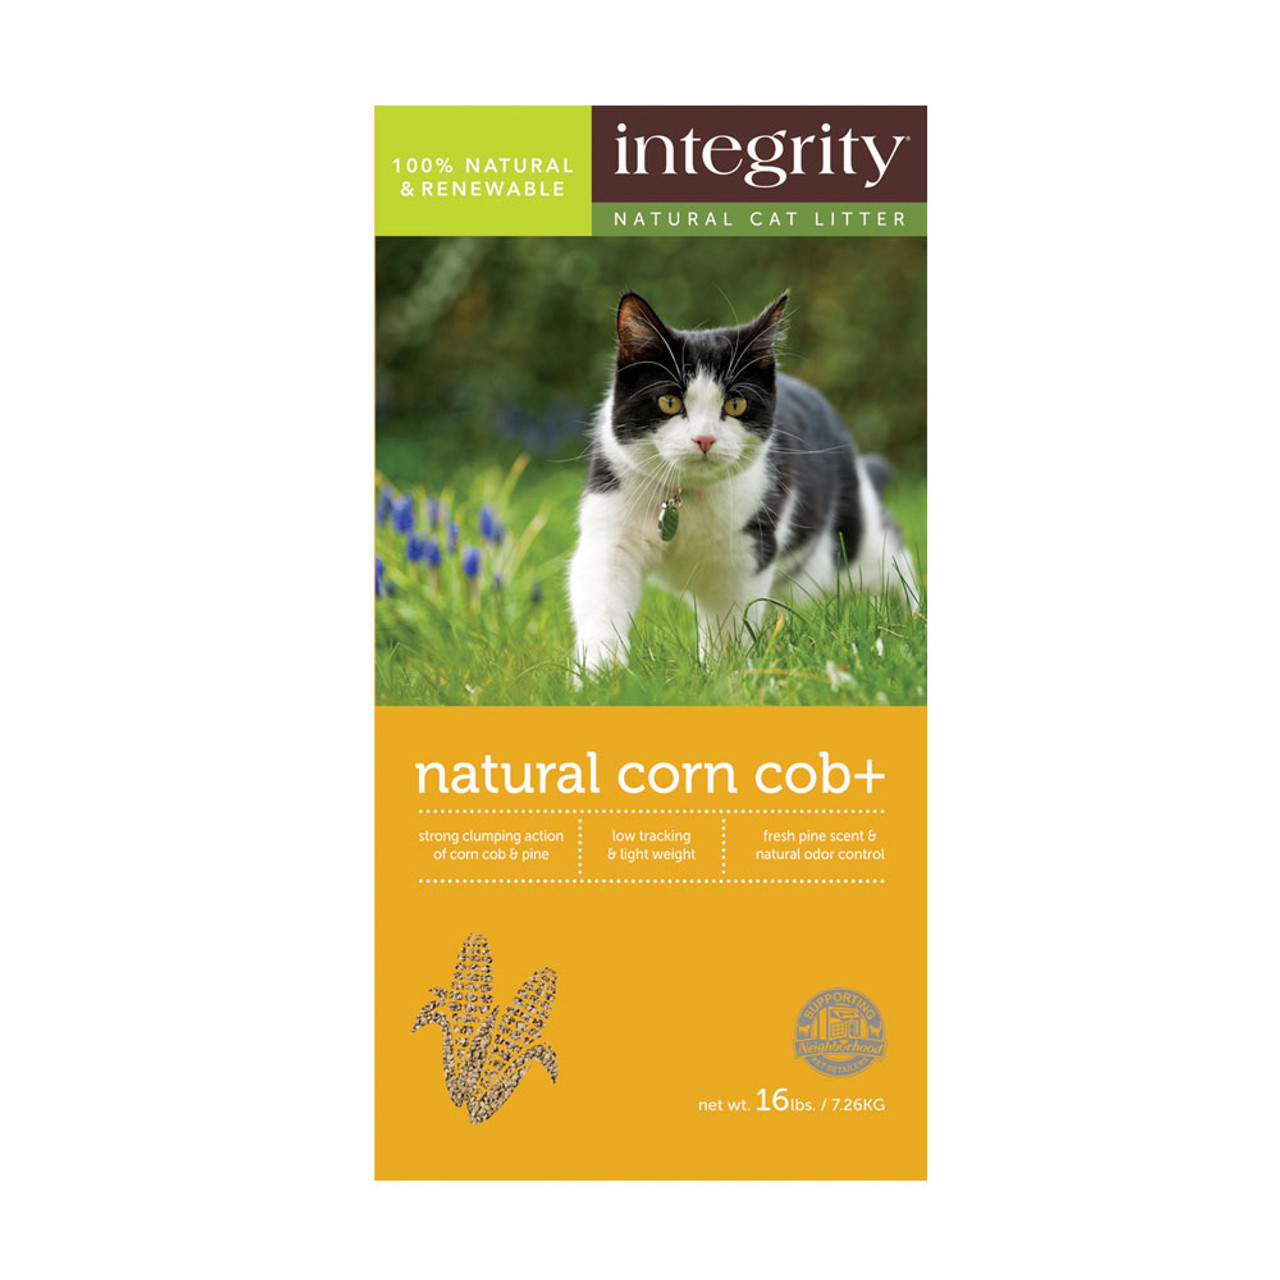 Integrity Natural Corn Cob+ Cat Litter